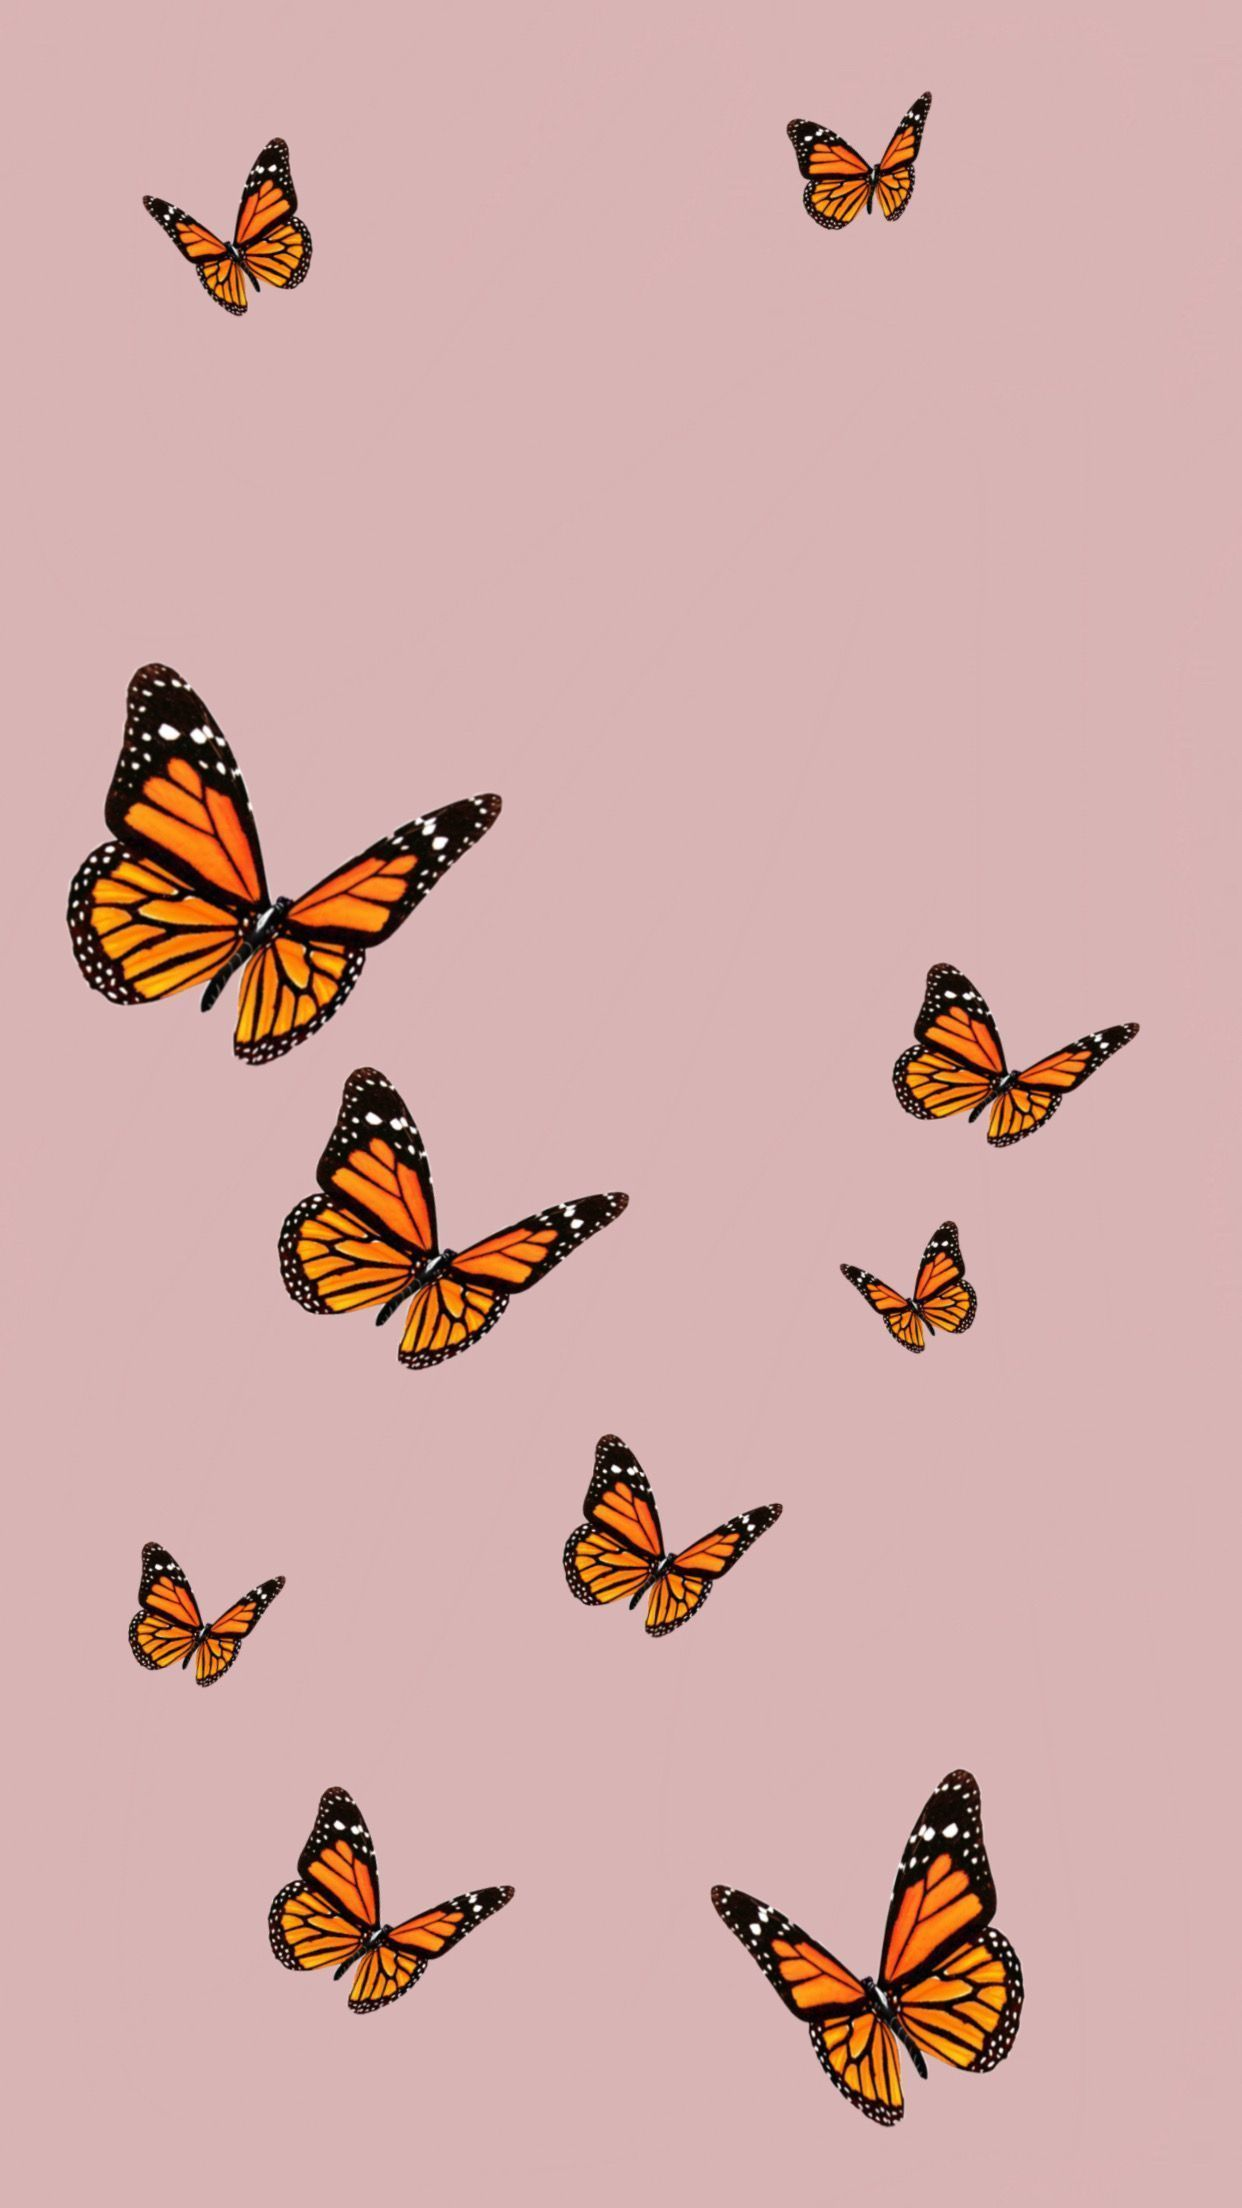 Cute Aesthetic Pink Butterfly Wallpapers - Wallpaper Cave